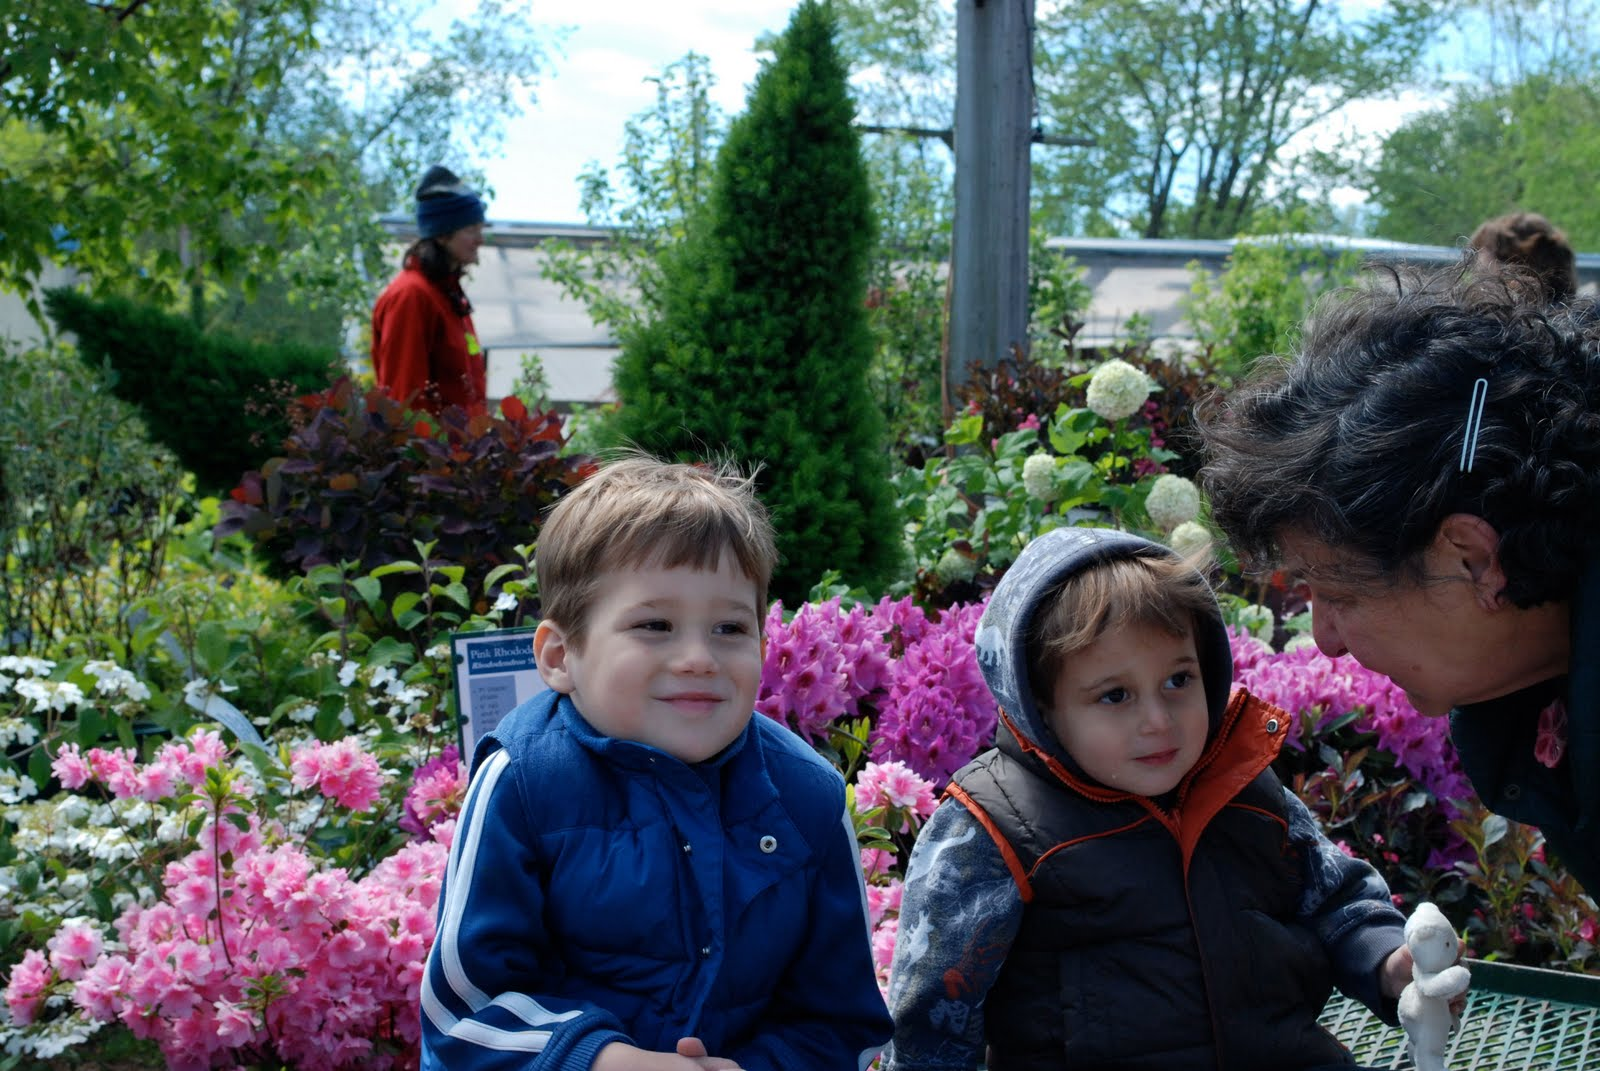 Dadventures happy mother 39 s day at russell 39 s wayland ma for Russell s garden center wayland ma